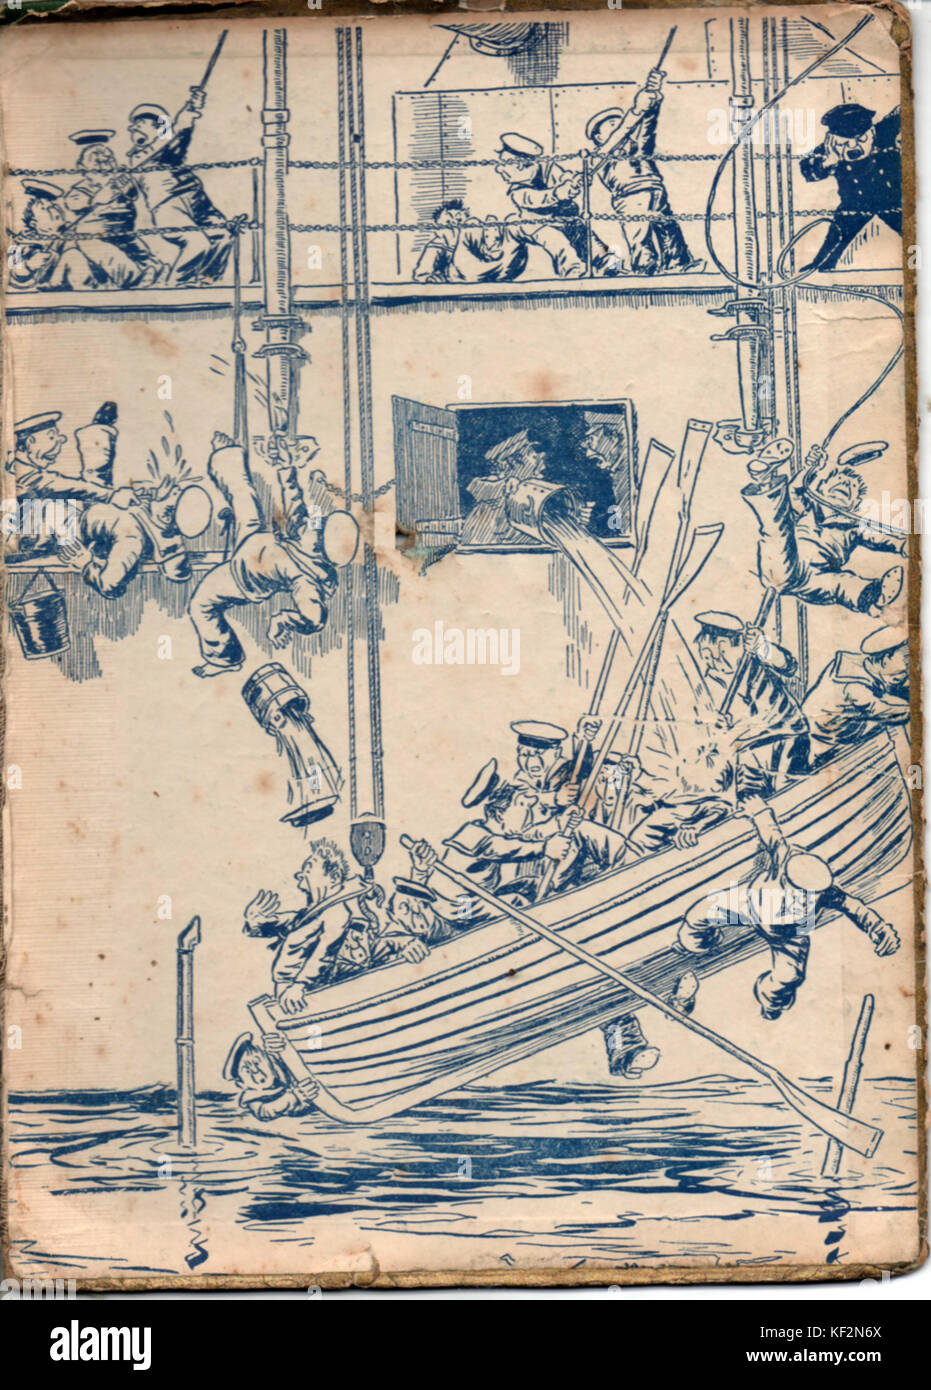 1919 Royal Navy cartoon figures from the inner cover pages of  the British WWI naval book 'The Wonder Book of - Stock Image